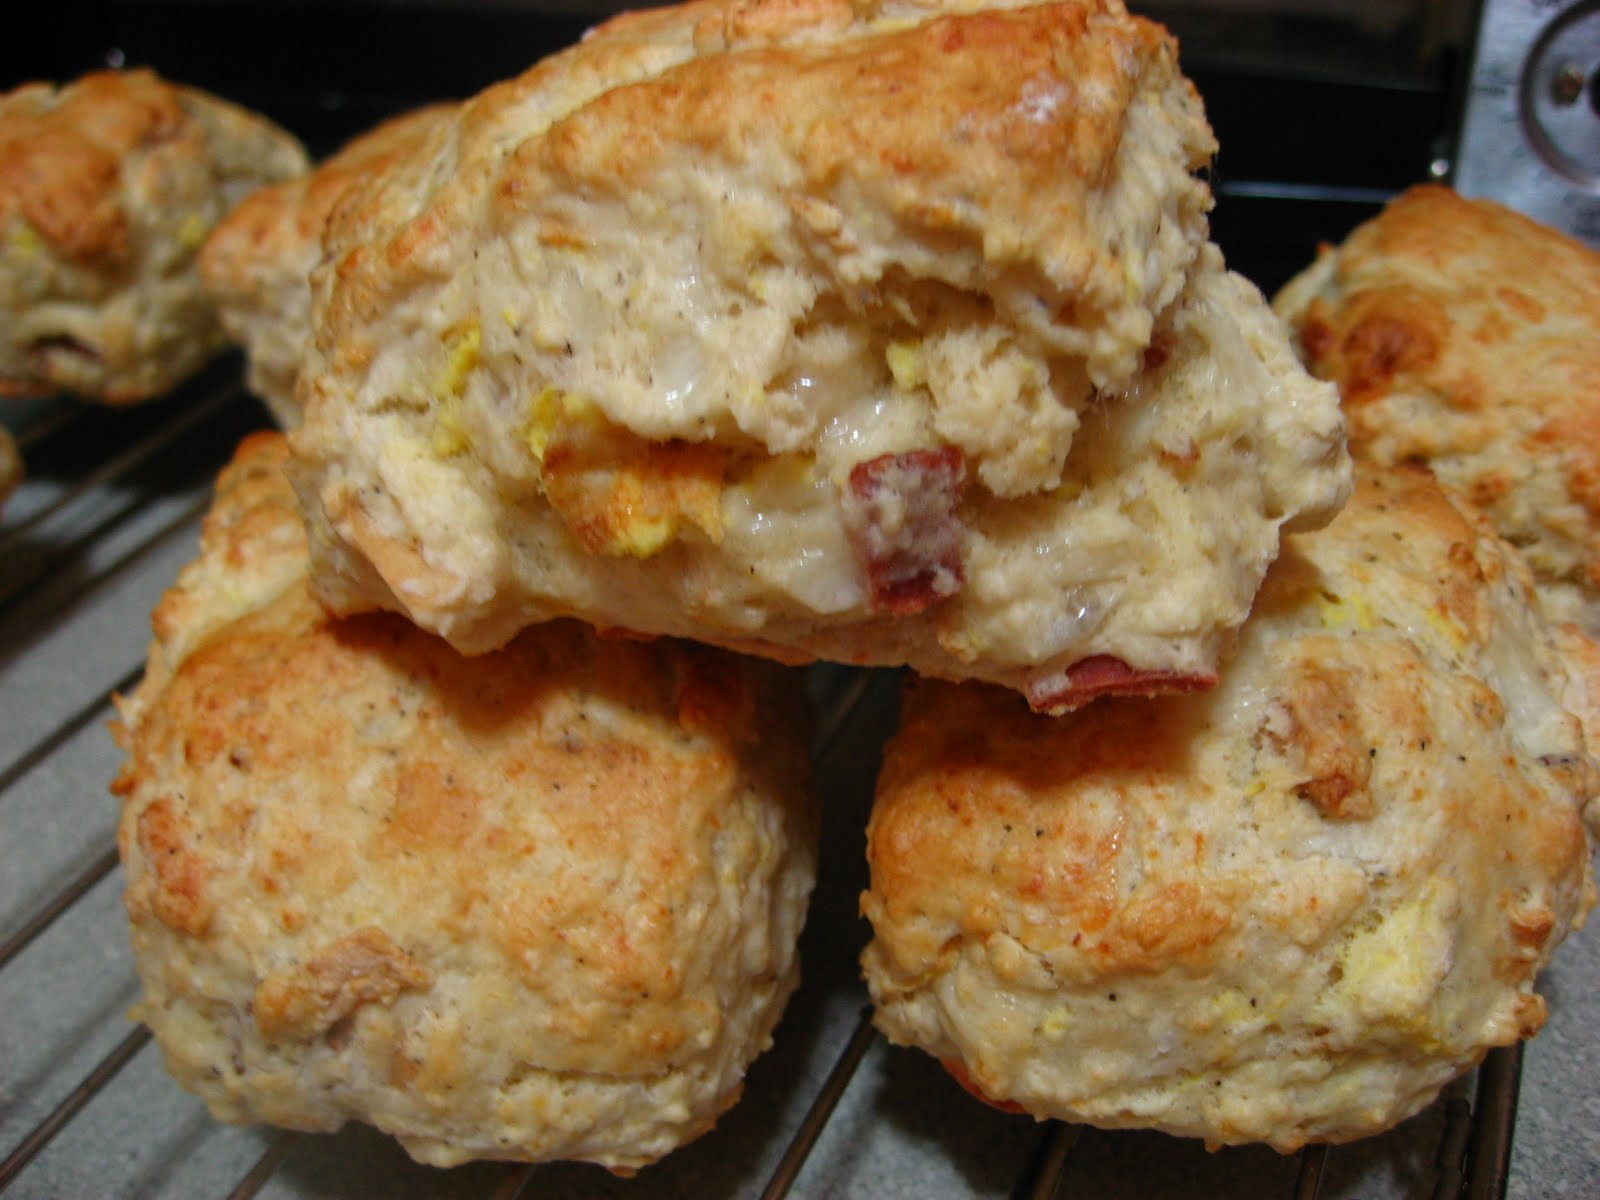 ... and i found the pictures of the bacon egg and cheese scones that